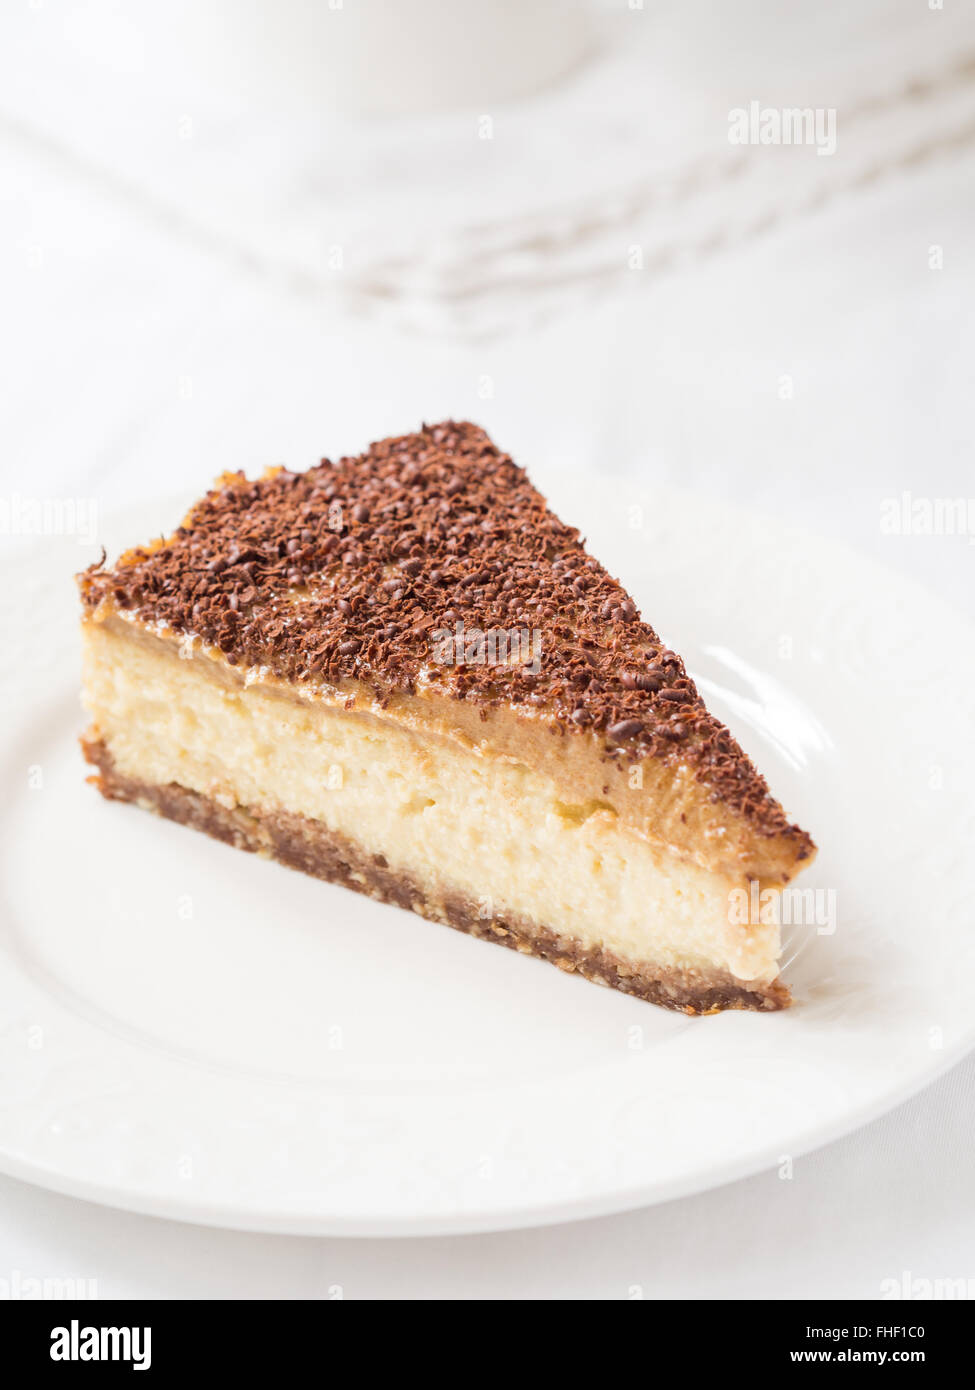 Slice of vegan millet cheesecake with date caramel on a cleat background. - Stock Image